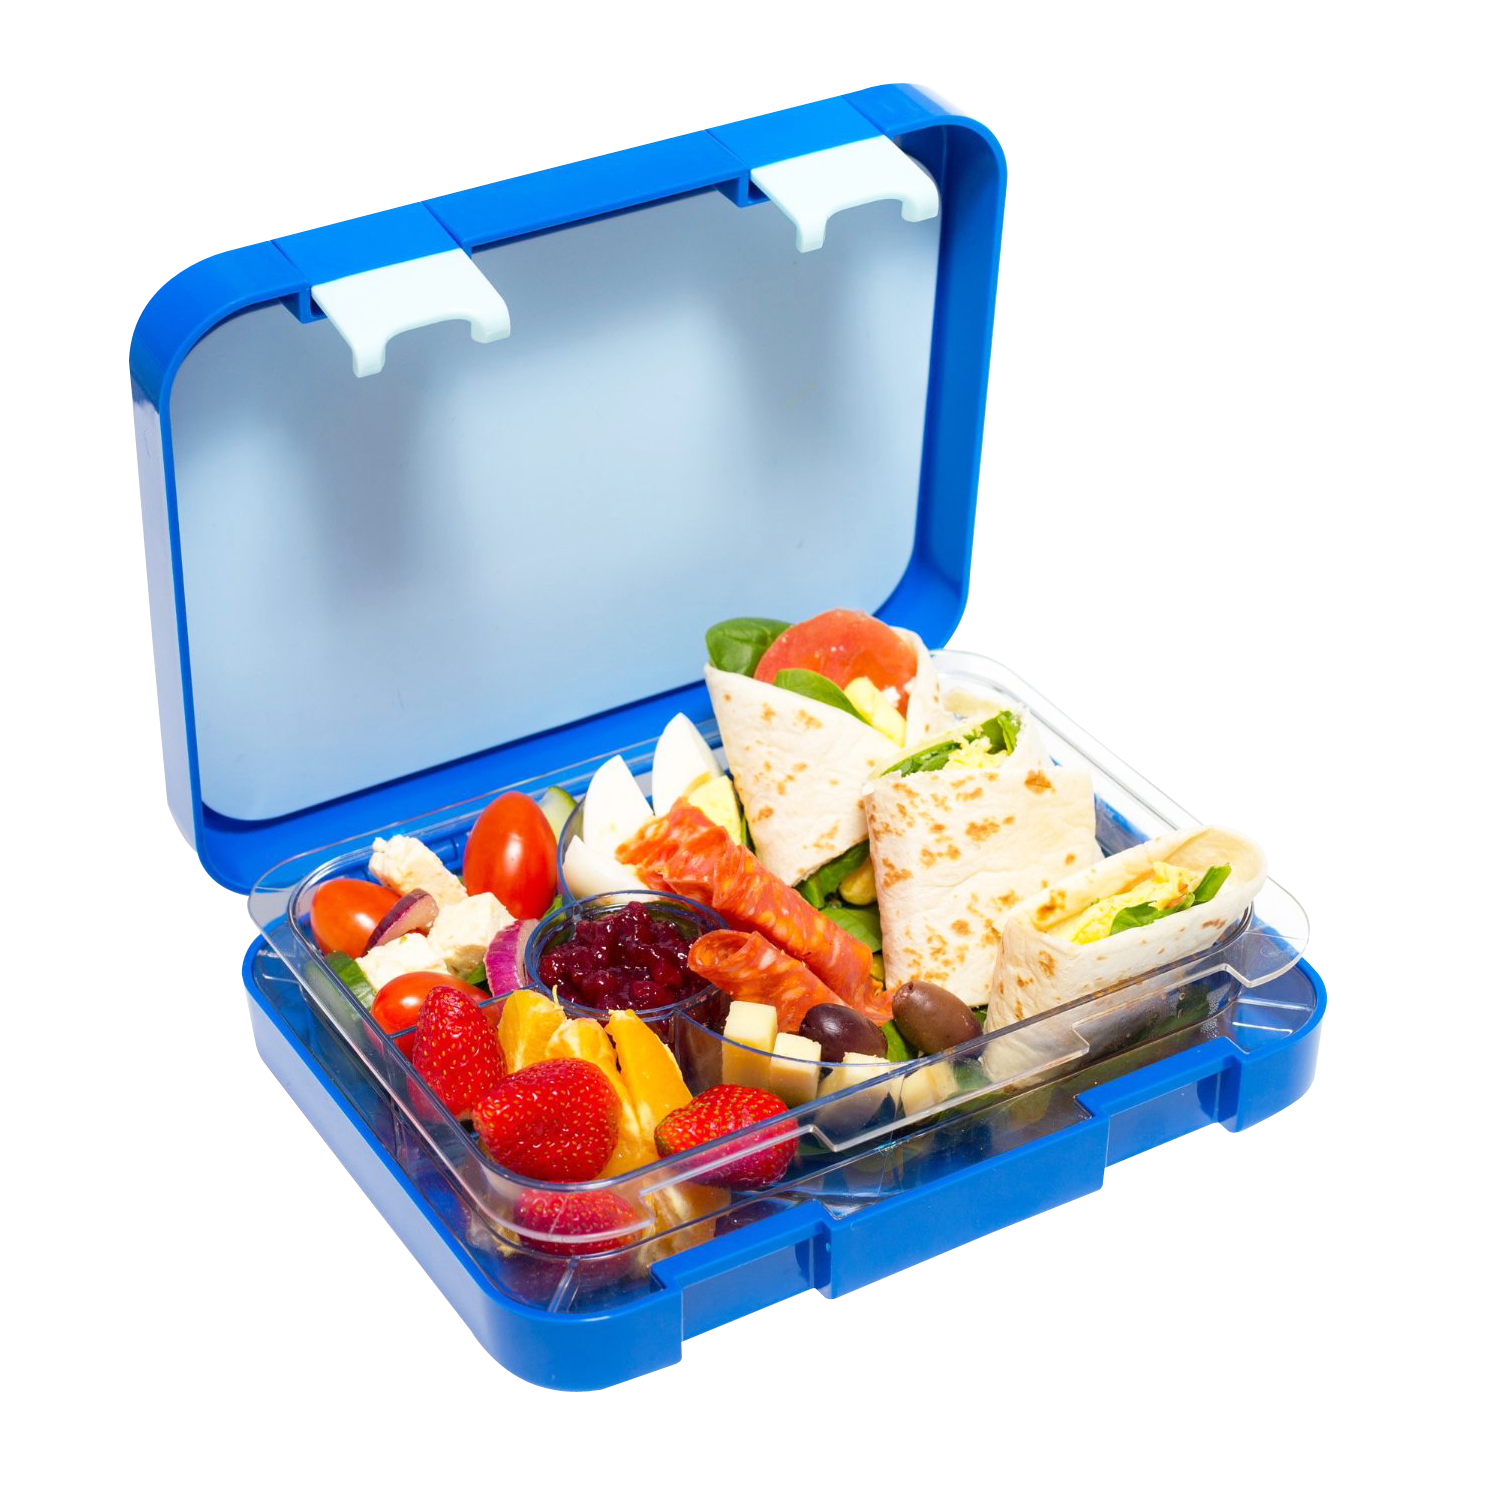 Lunch box png. Image purepng free transparent